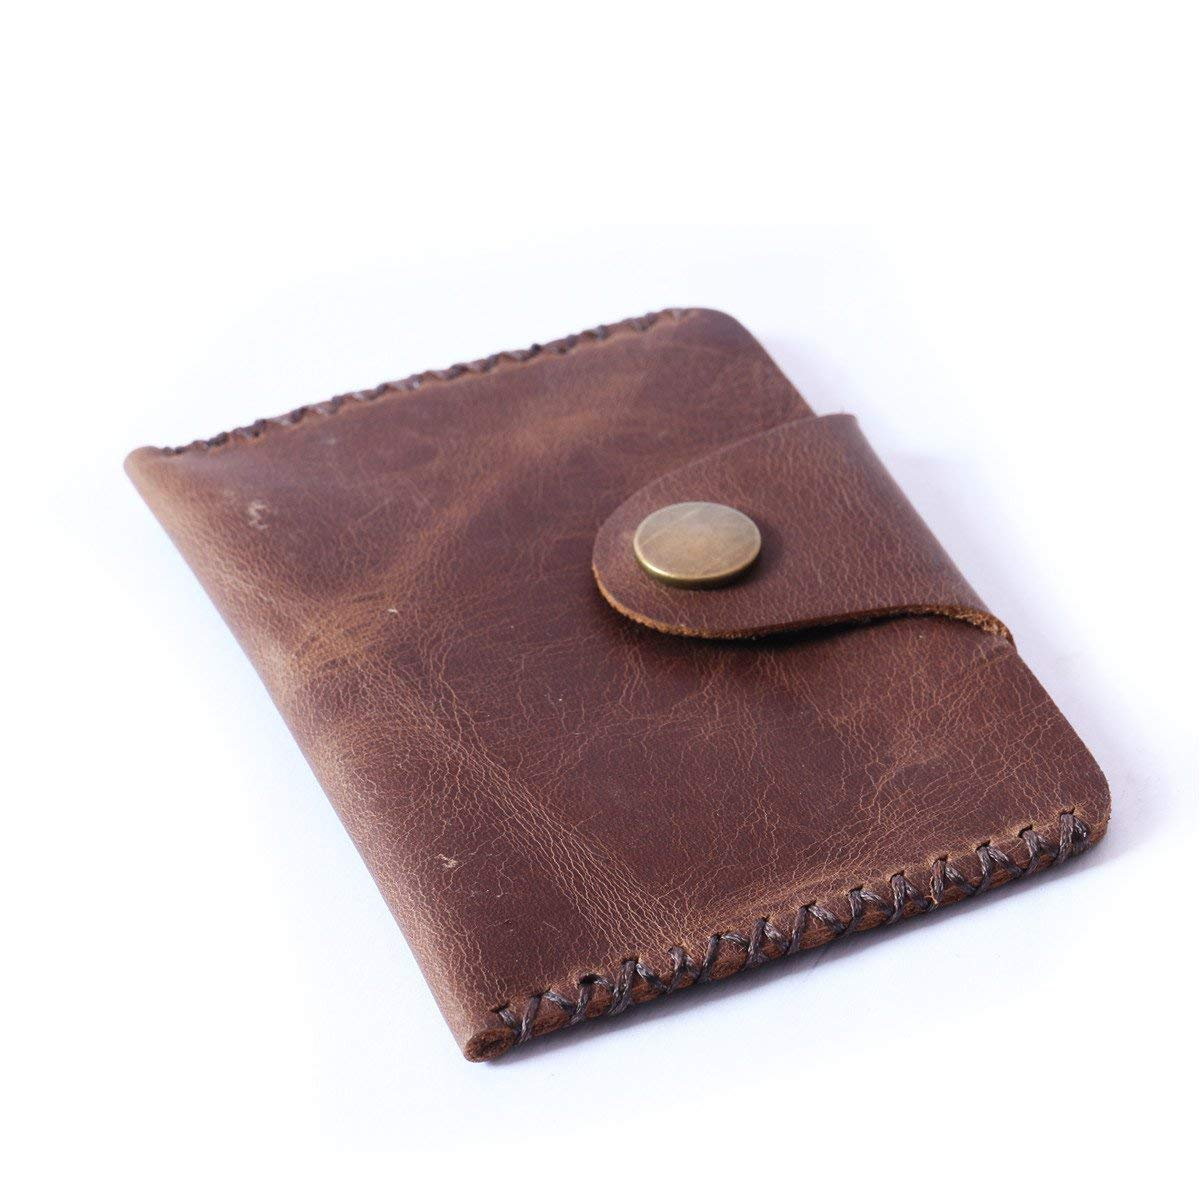 Card Case Wallet Handmade Thin Front Pocket Genuine Leather Card Holder for men women